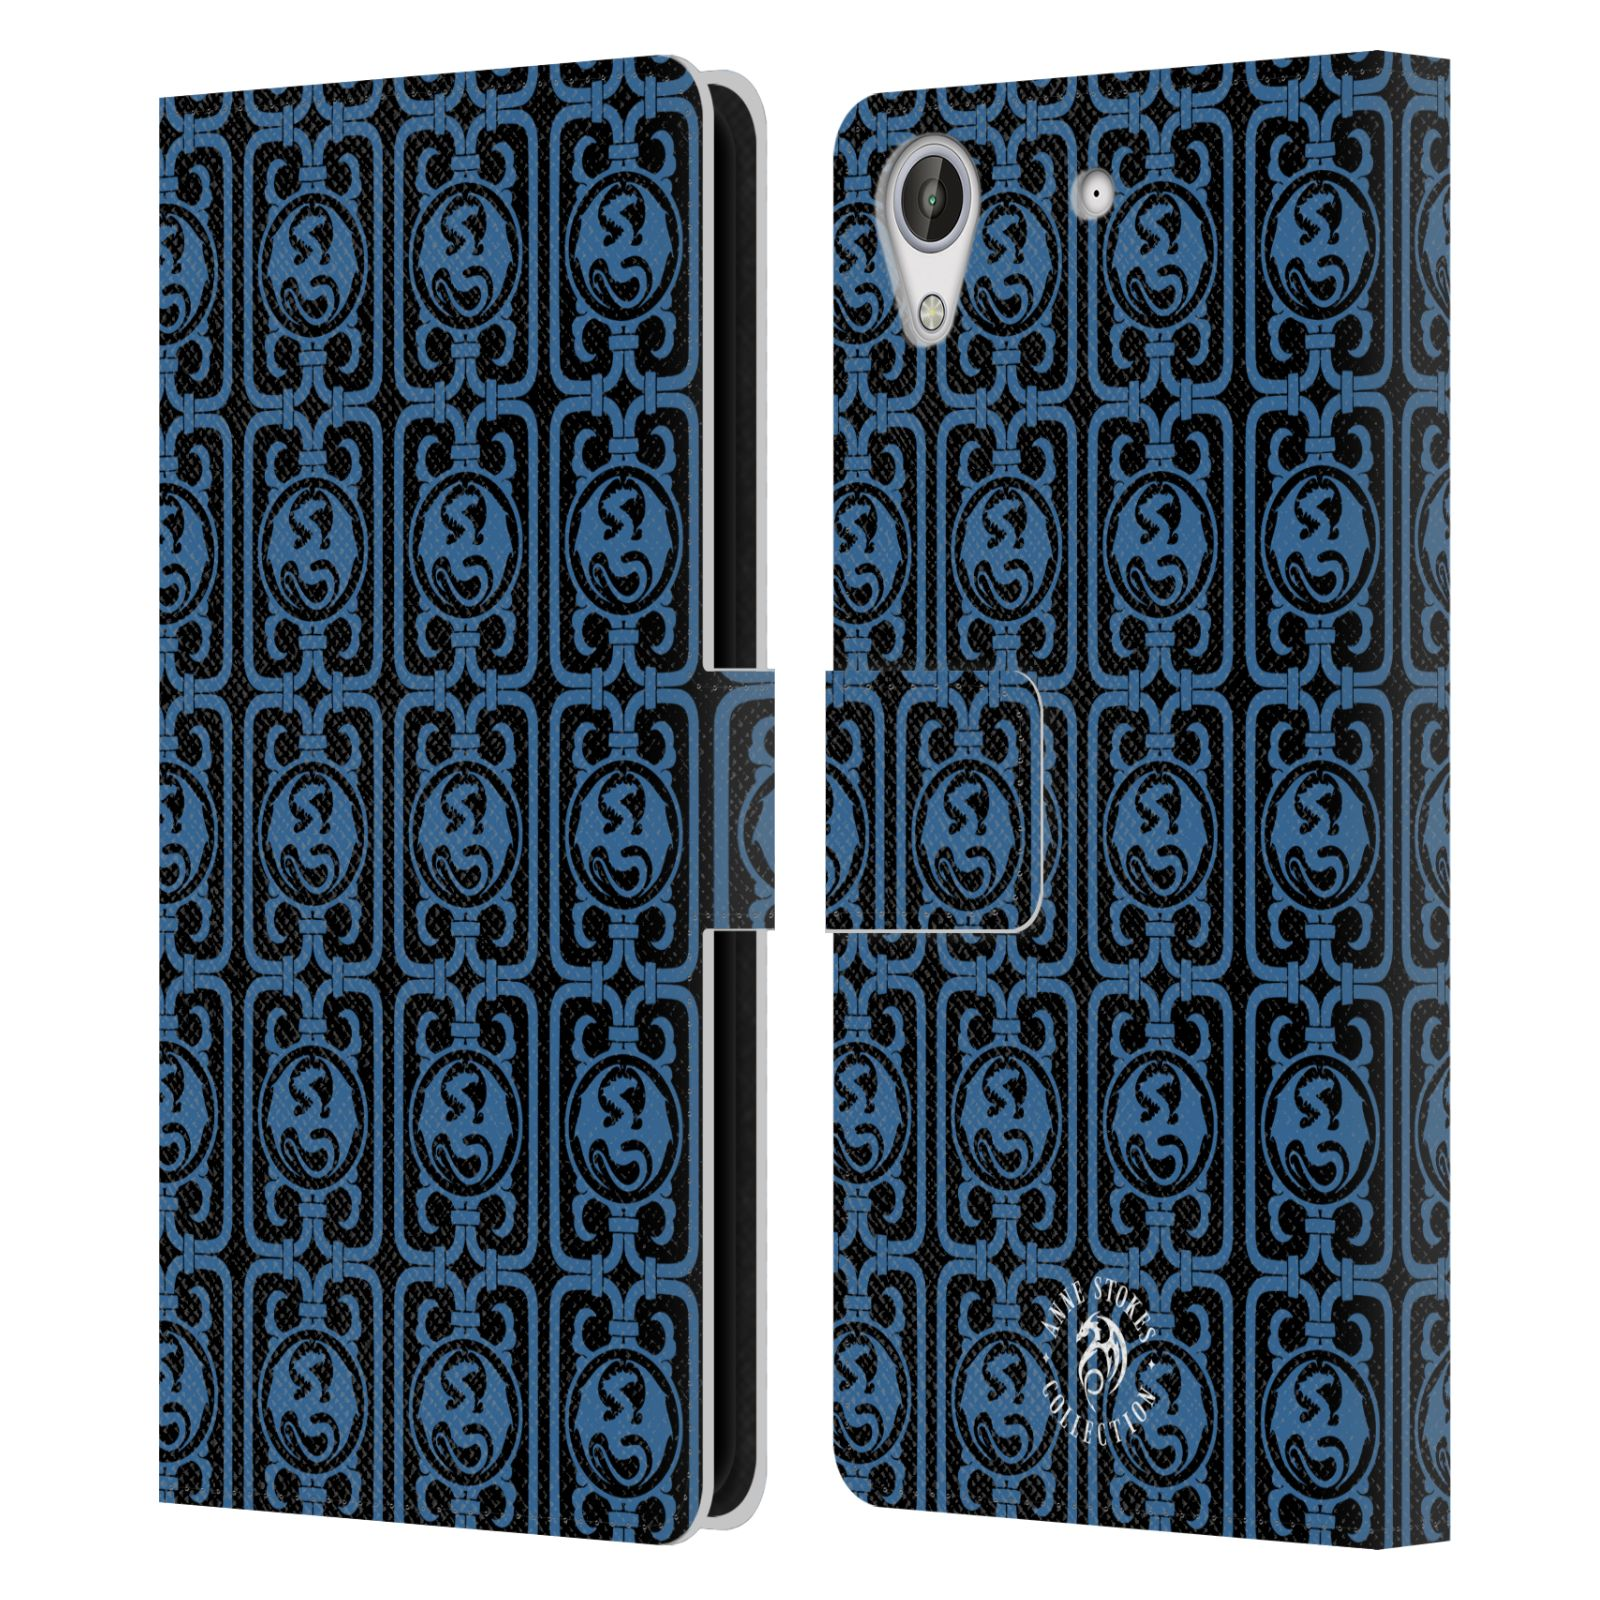 OFFICIAL-ANNE-STOKES-ORNAMENTS-LEATHER-BOOK-WALLET-CASE-COVER-FOR-HTC-PHONES-2